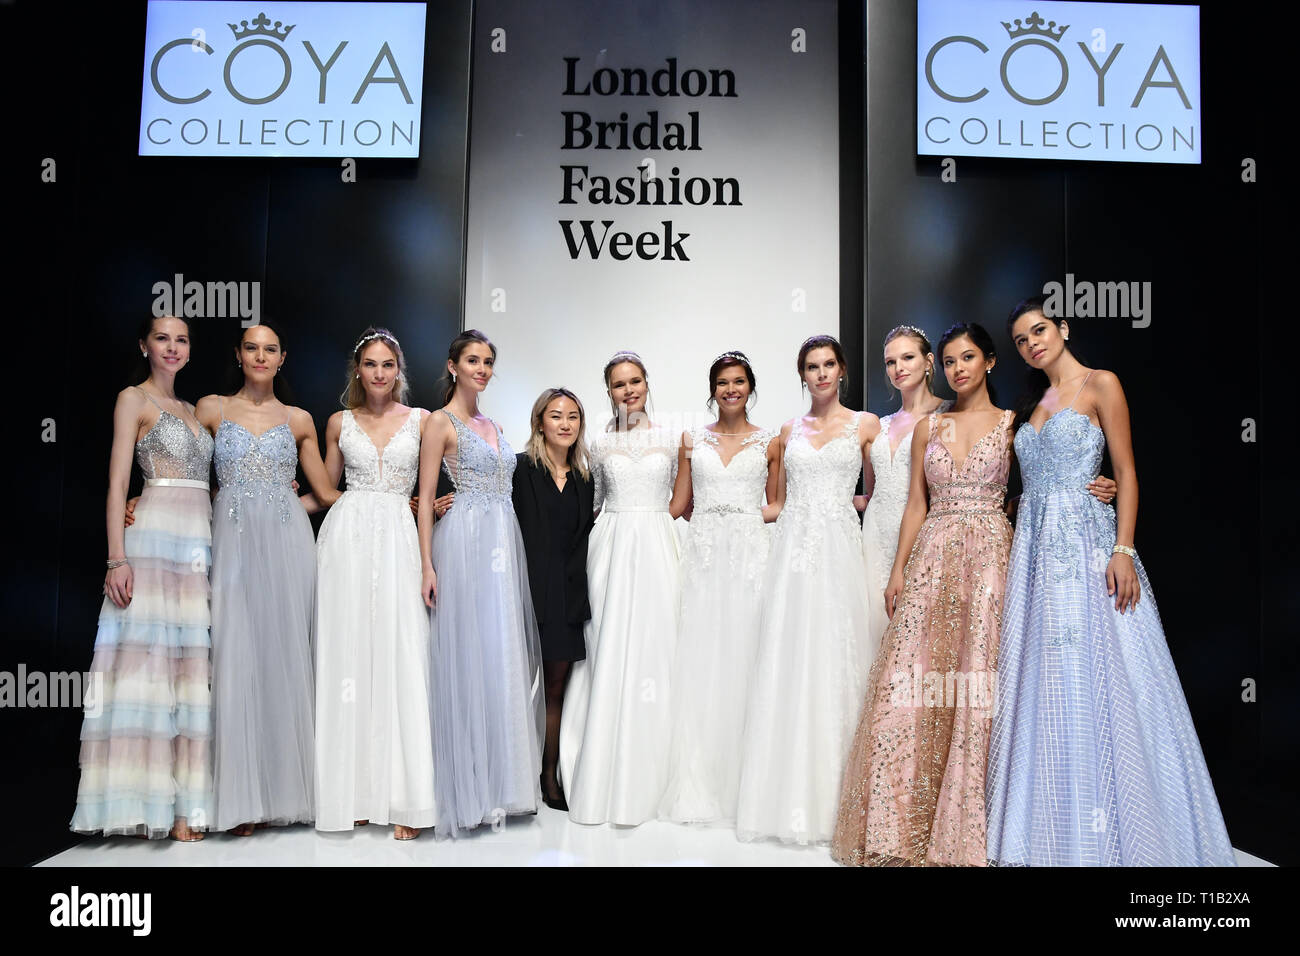 London, UK. 25th Mar 2019. Coya Collection at White Gallery at London Bridal Fashion Week at London Excel on 25 March 2019, UK. Credit: Picture Capital/Alamy Live News - Stock Image